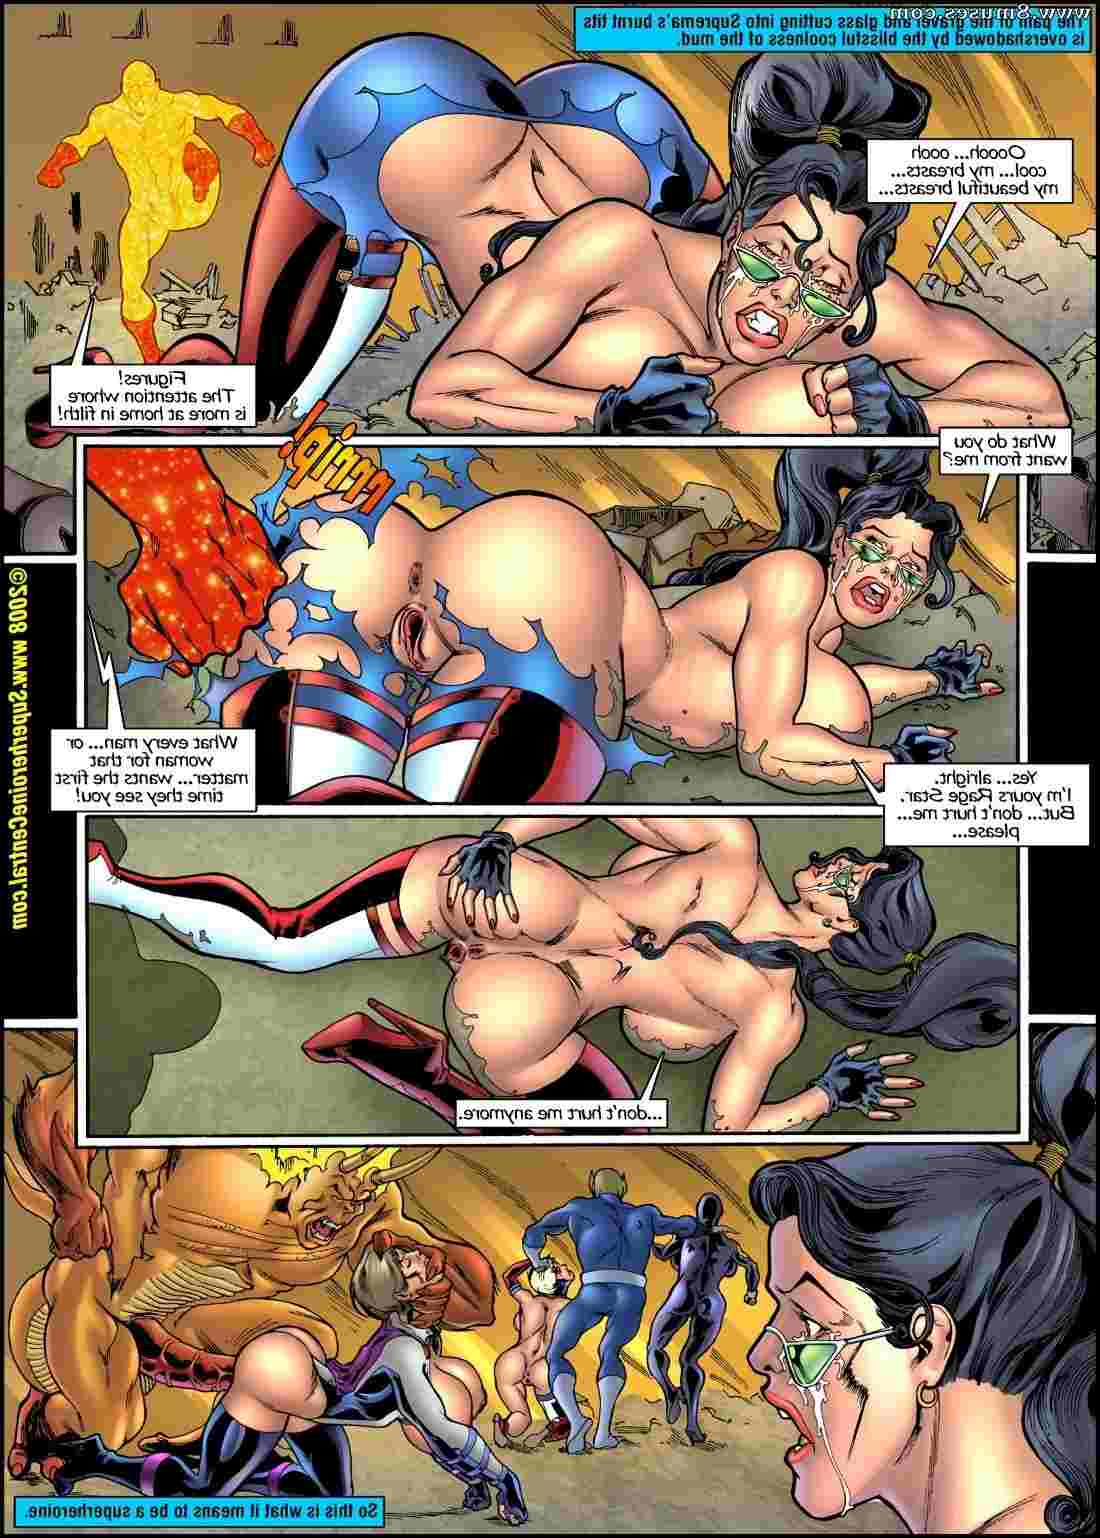 SuperHeroineComixxx/Freedom-Stars-in-Cream-of-the-Crop Freedom_Stars_in_Cream_of_the_Crop__8muses_-_Sex_and_Porn_Comics_44.jpg